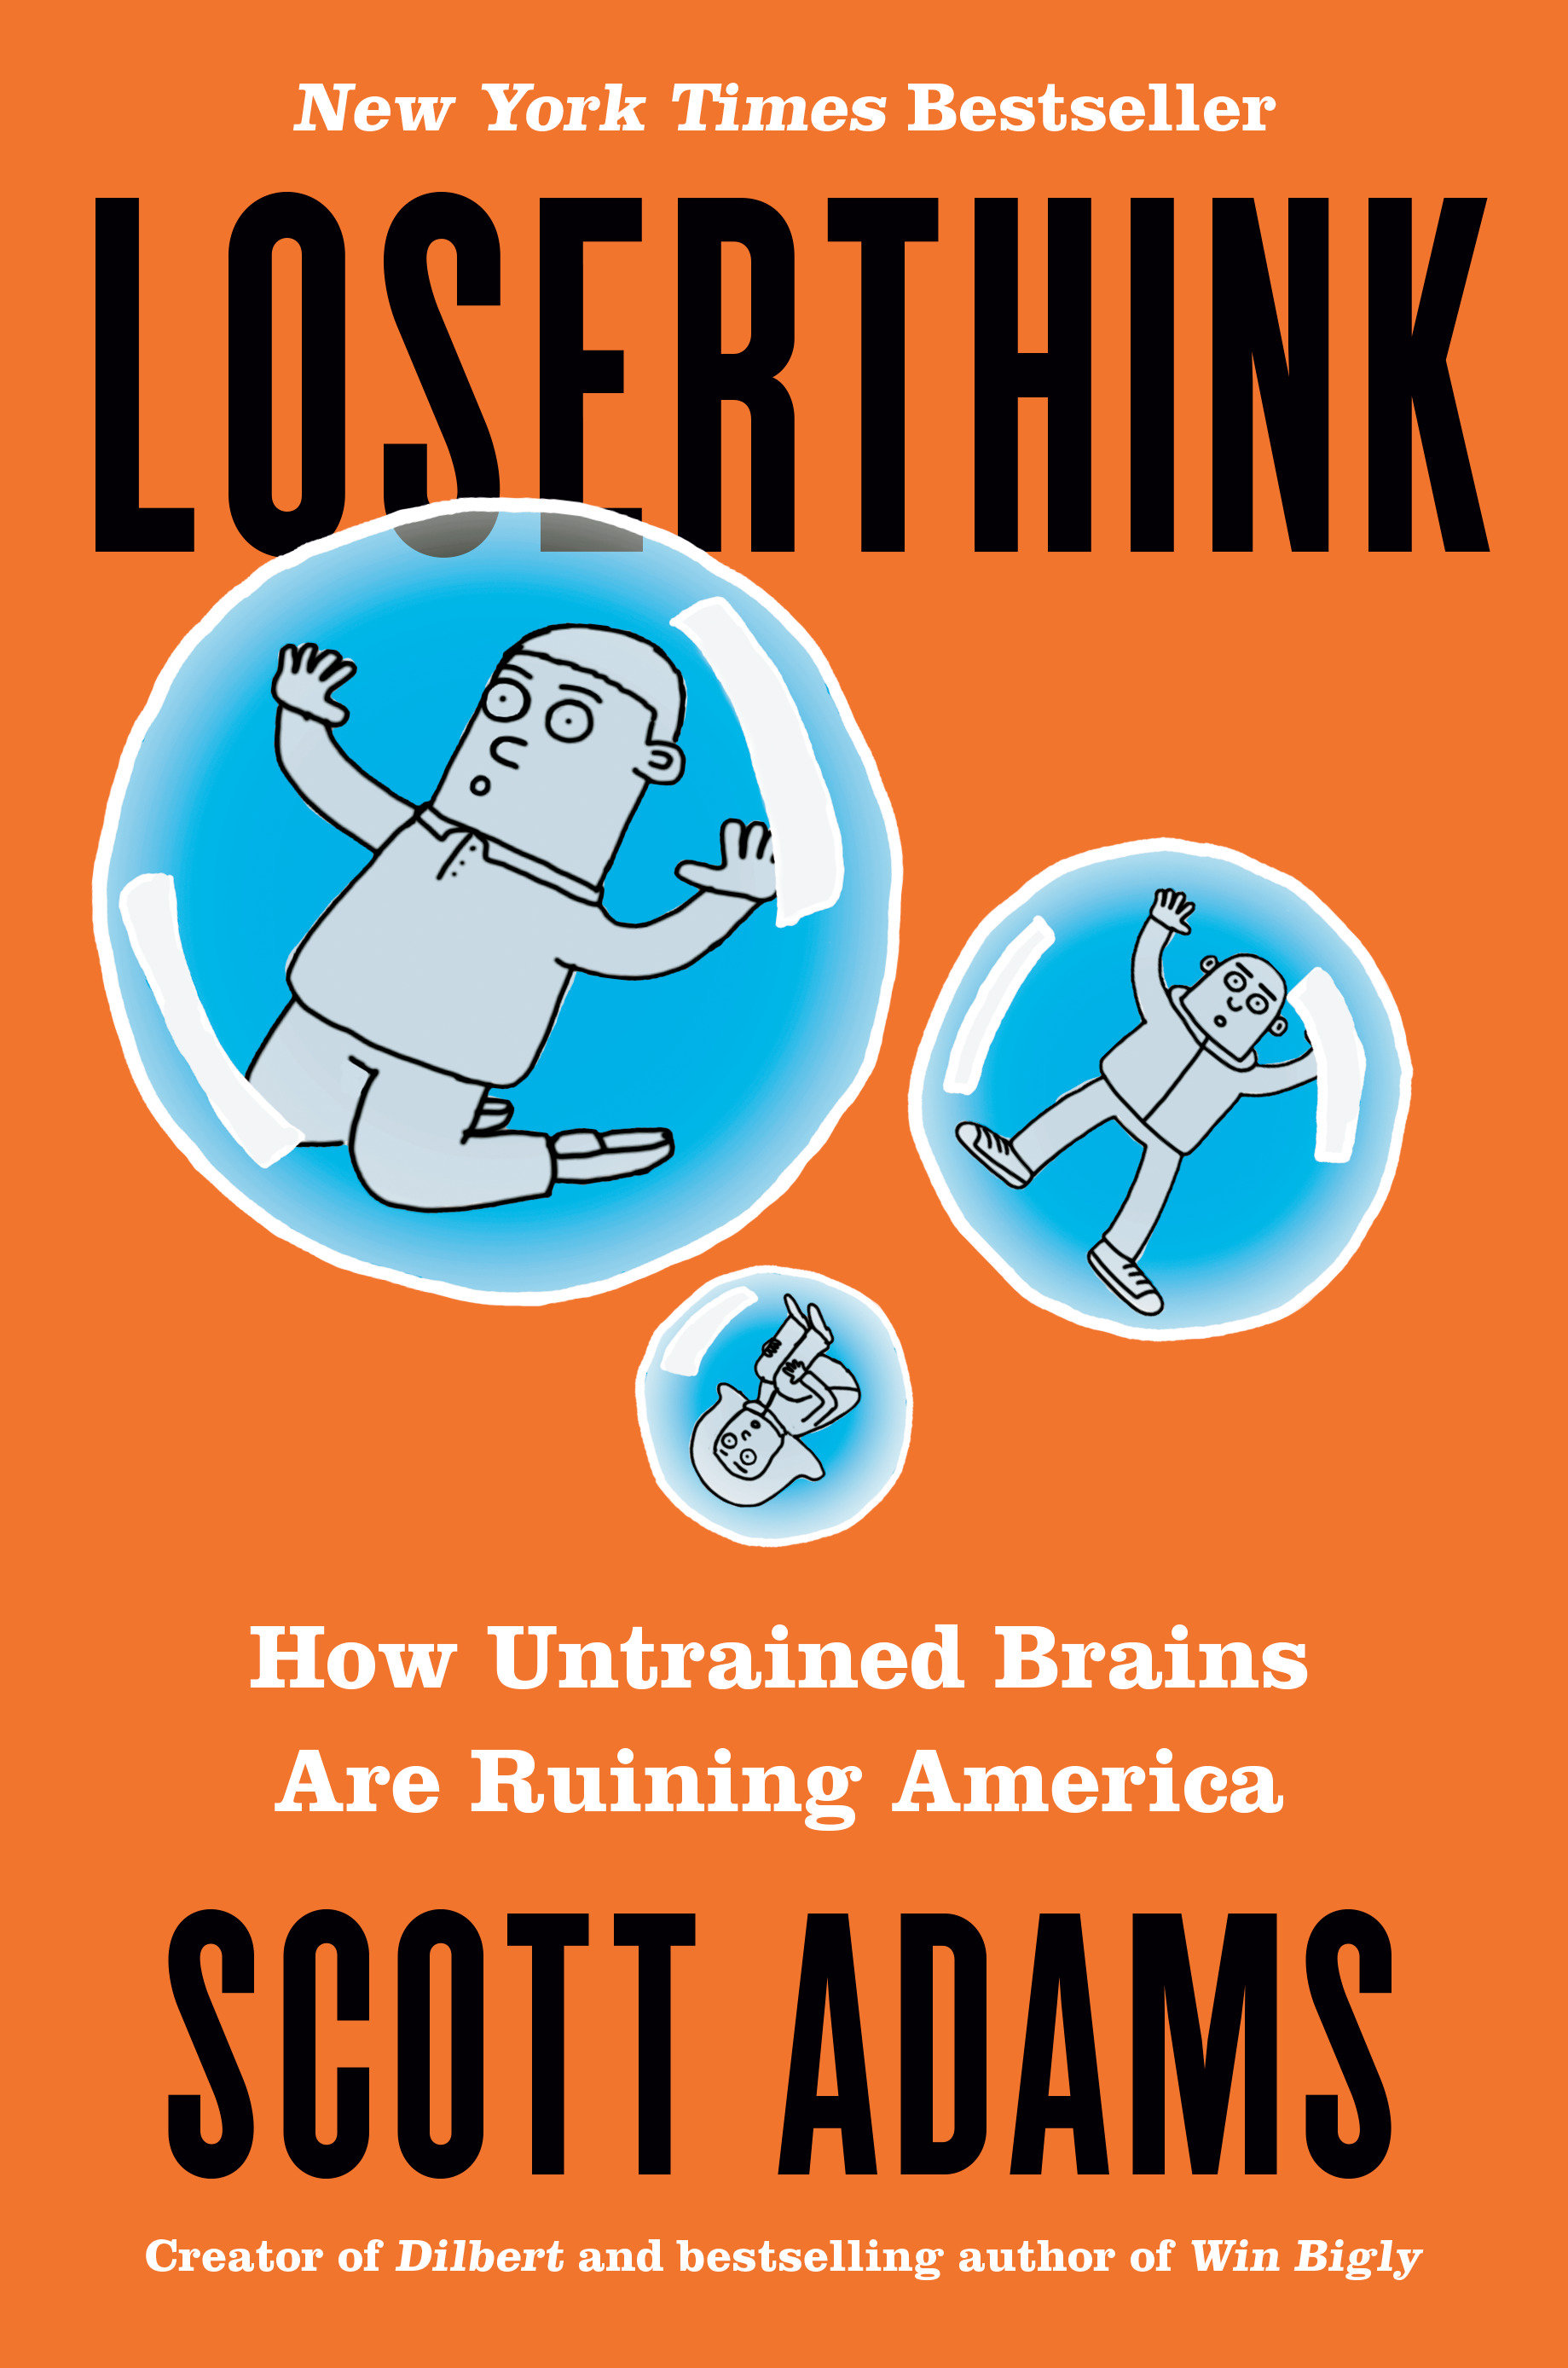 Loserthink how untrained brains are ruining America cover image